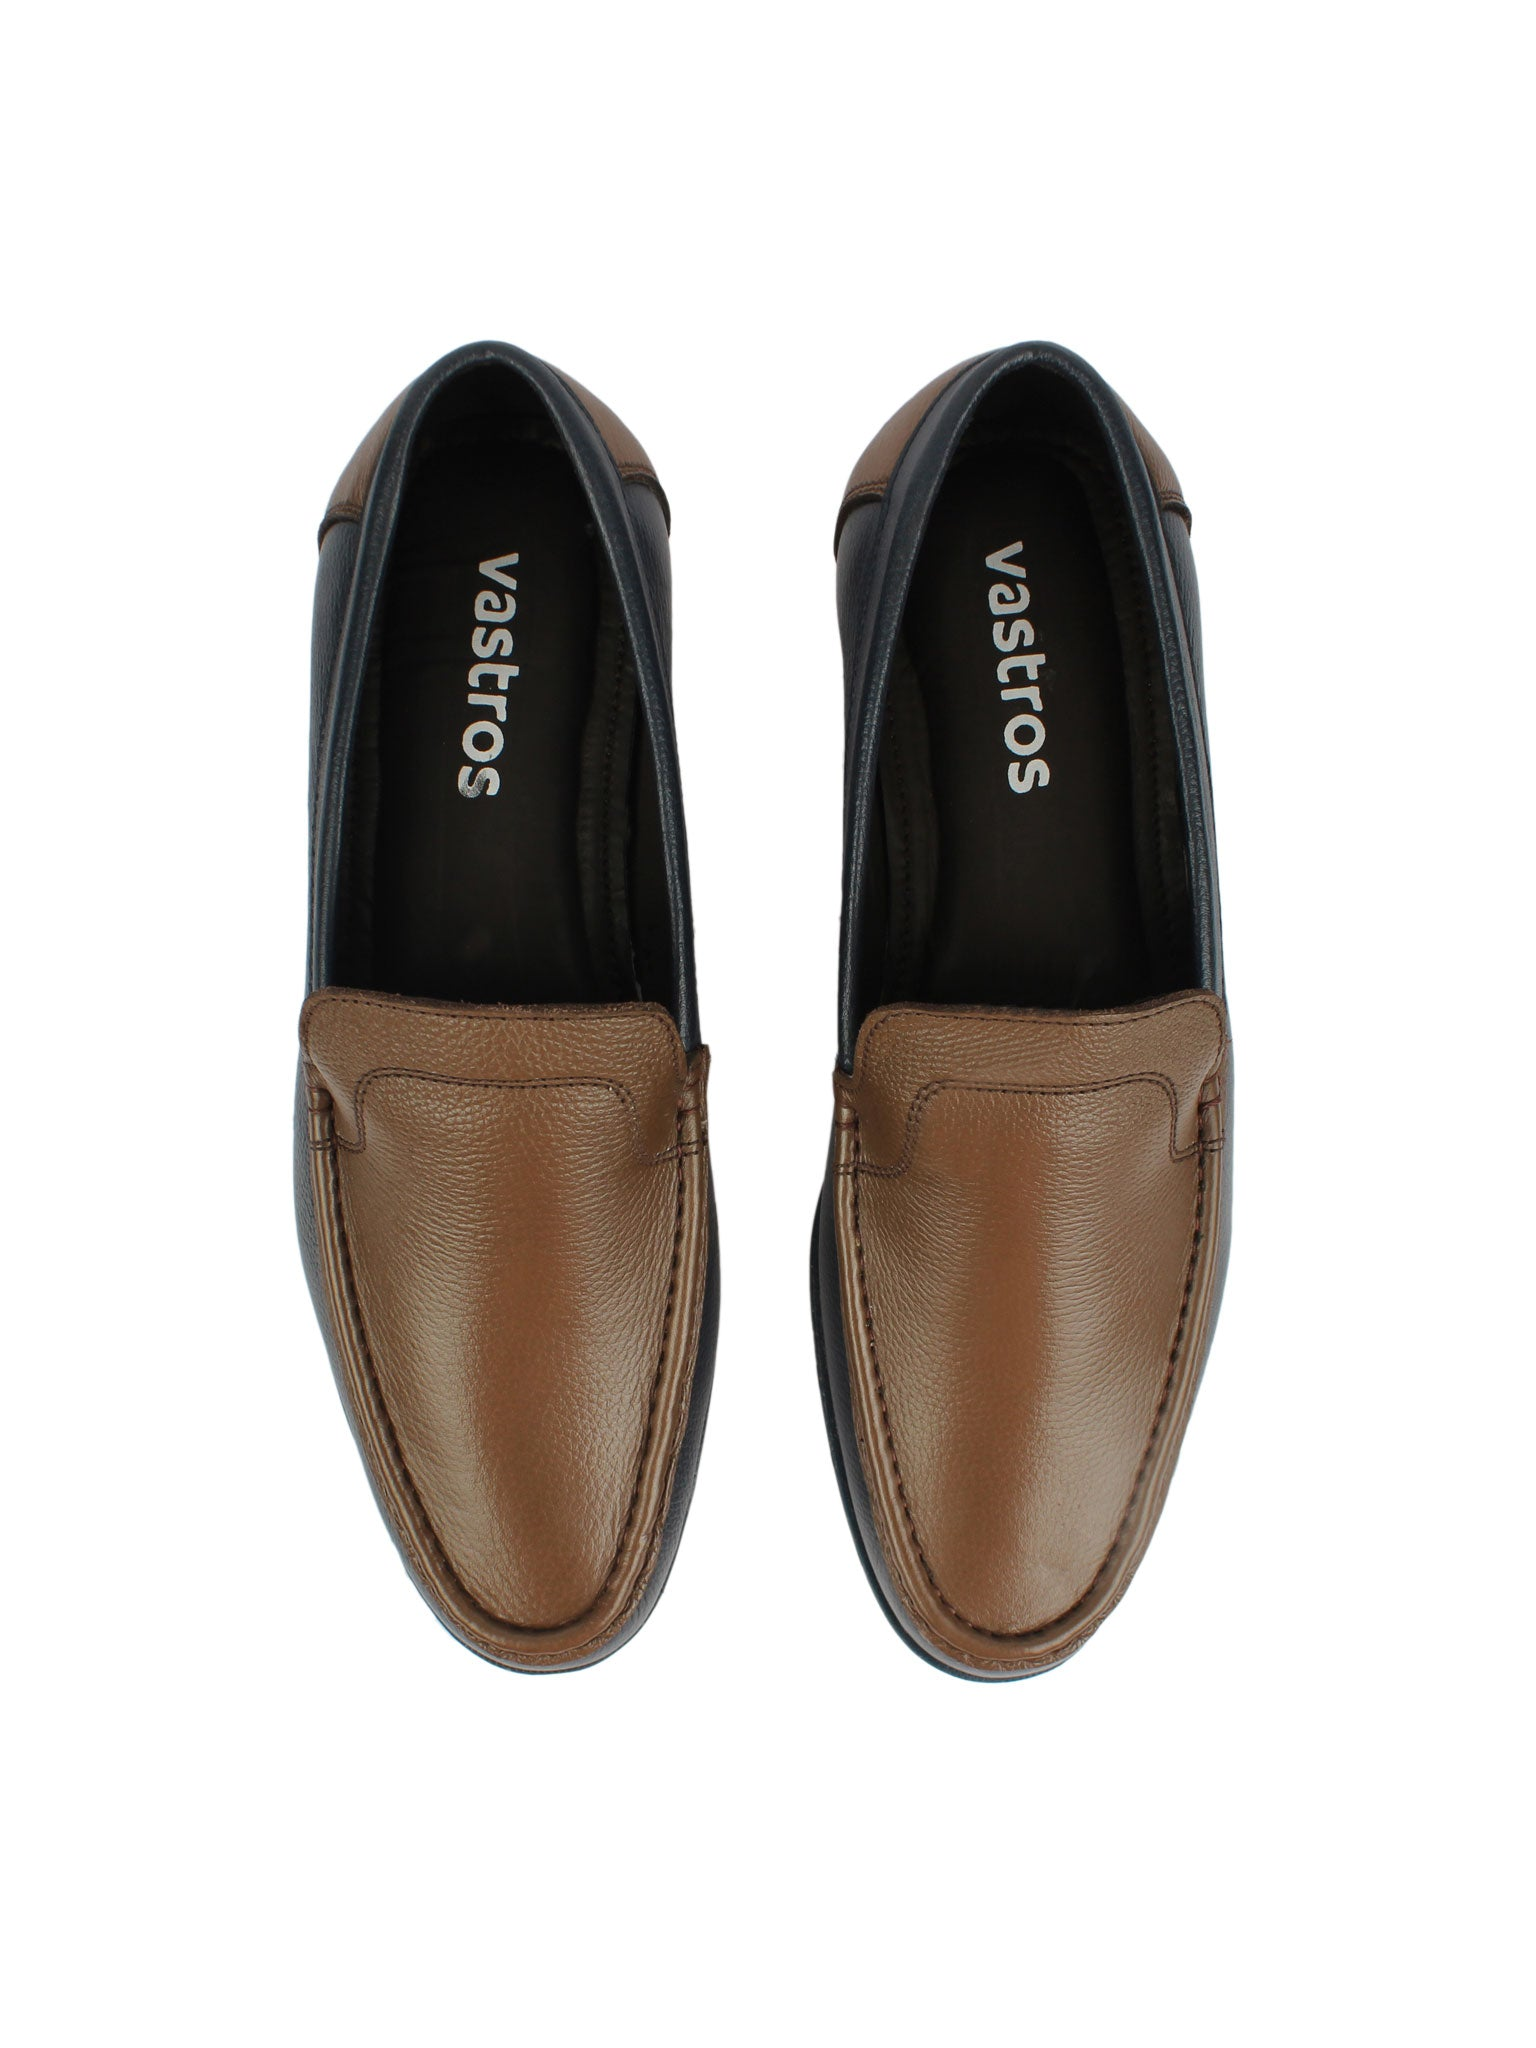 Casual Loafer- Brown and Blue